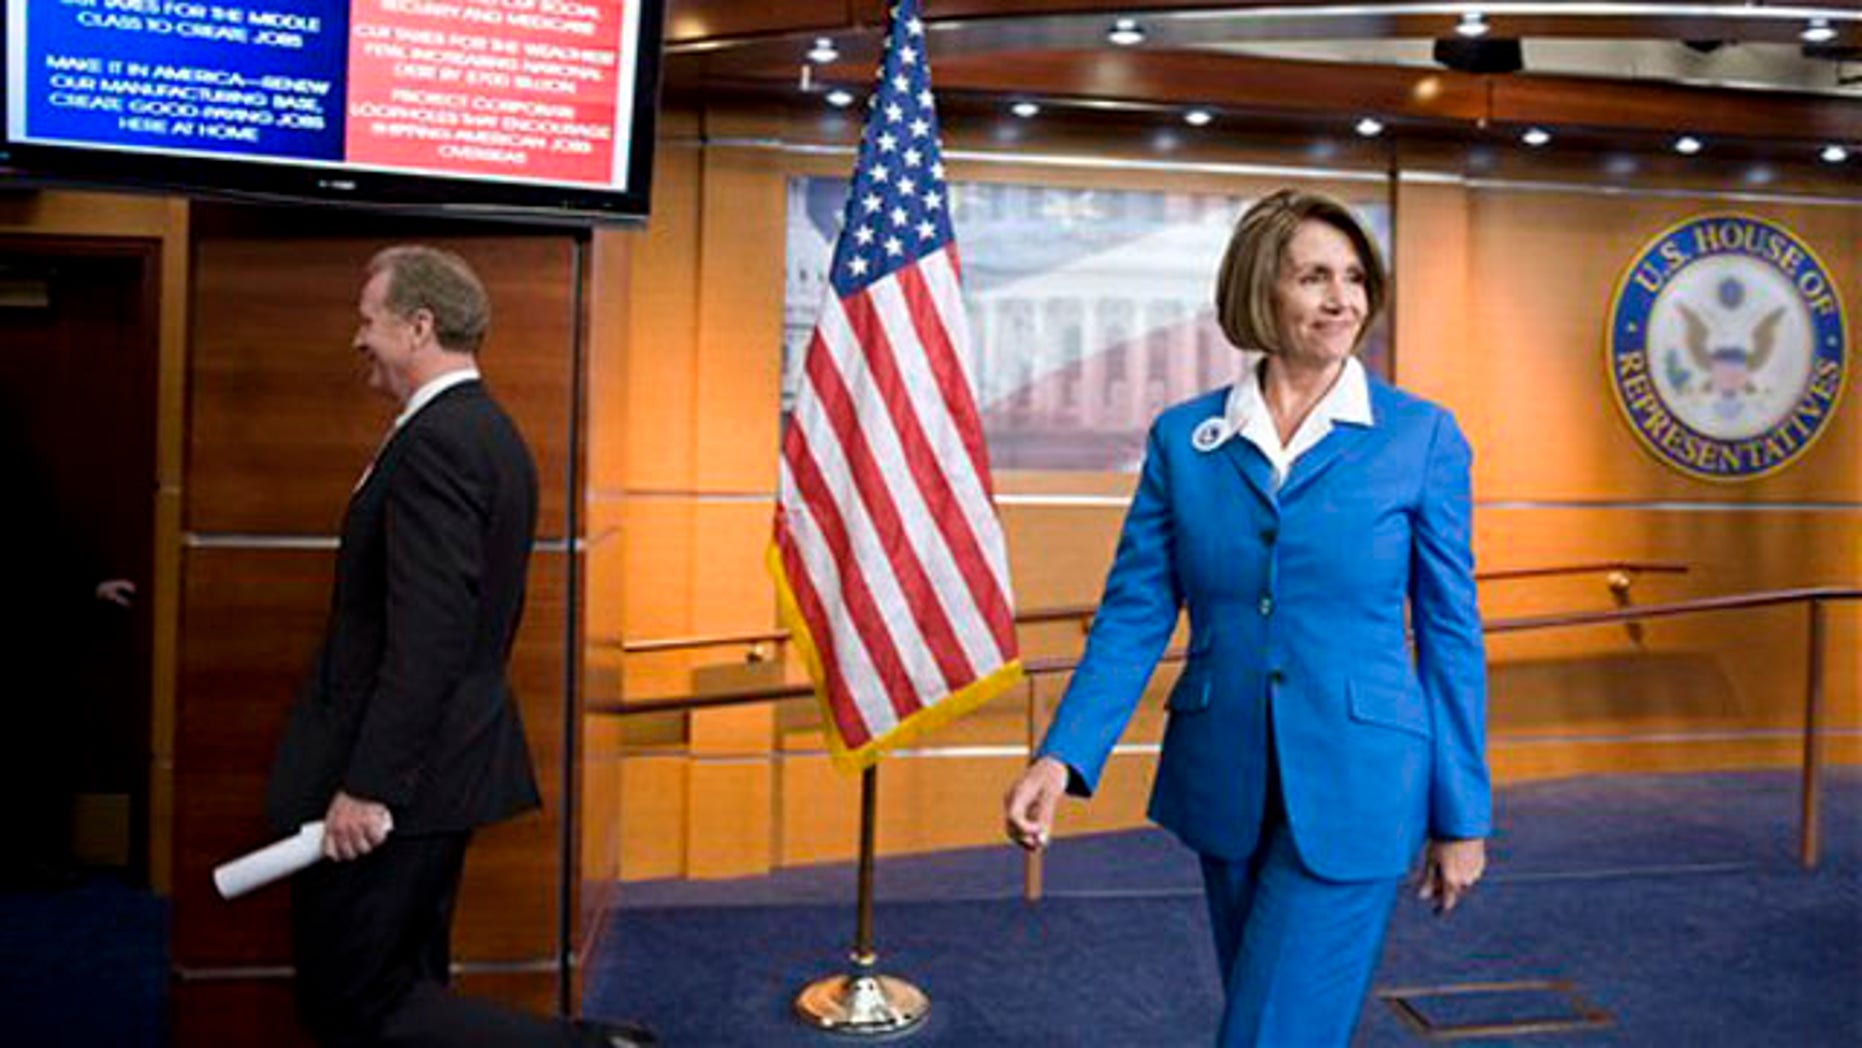 House Speaker Nancy Pelosi, right, and Rep. Chris Van Hollen, left, leave a news conference on Capitol Hill Sept. 30. (AP Photo)